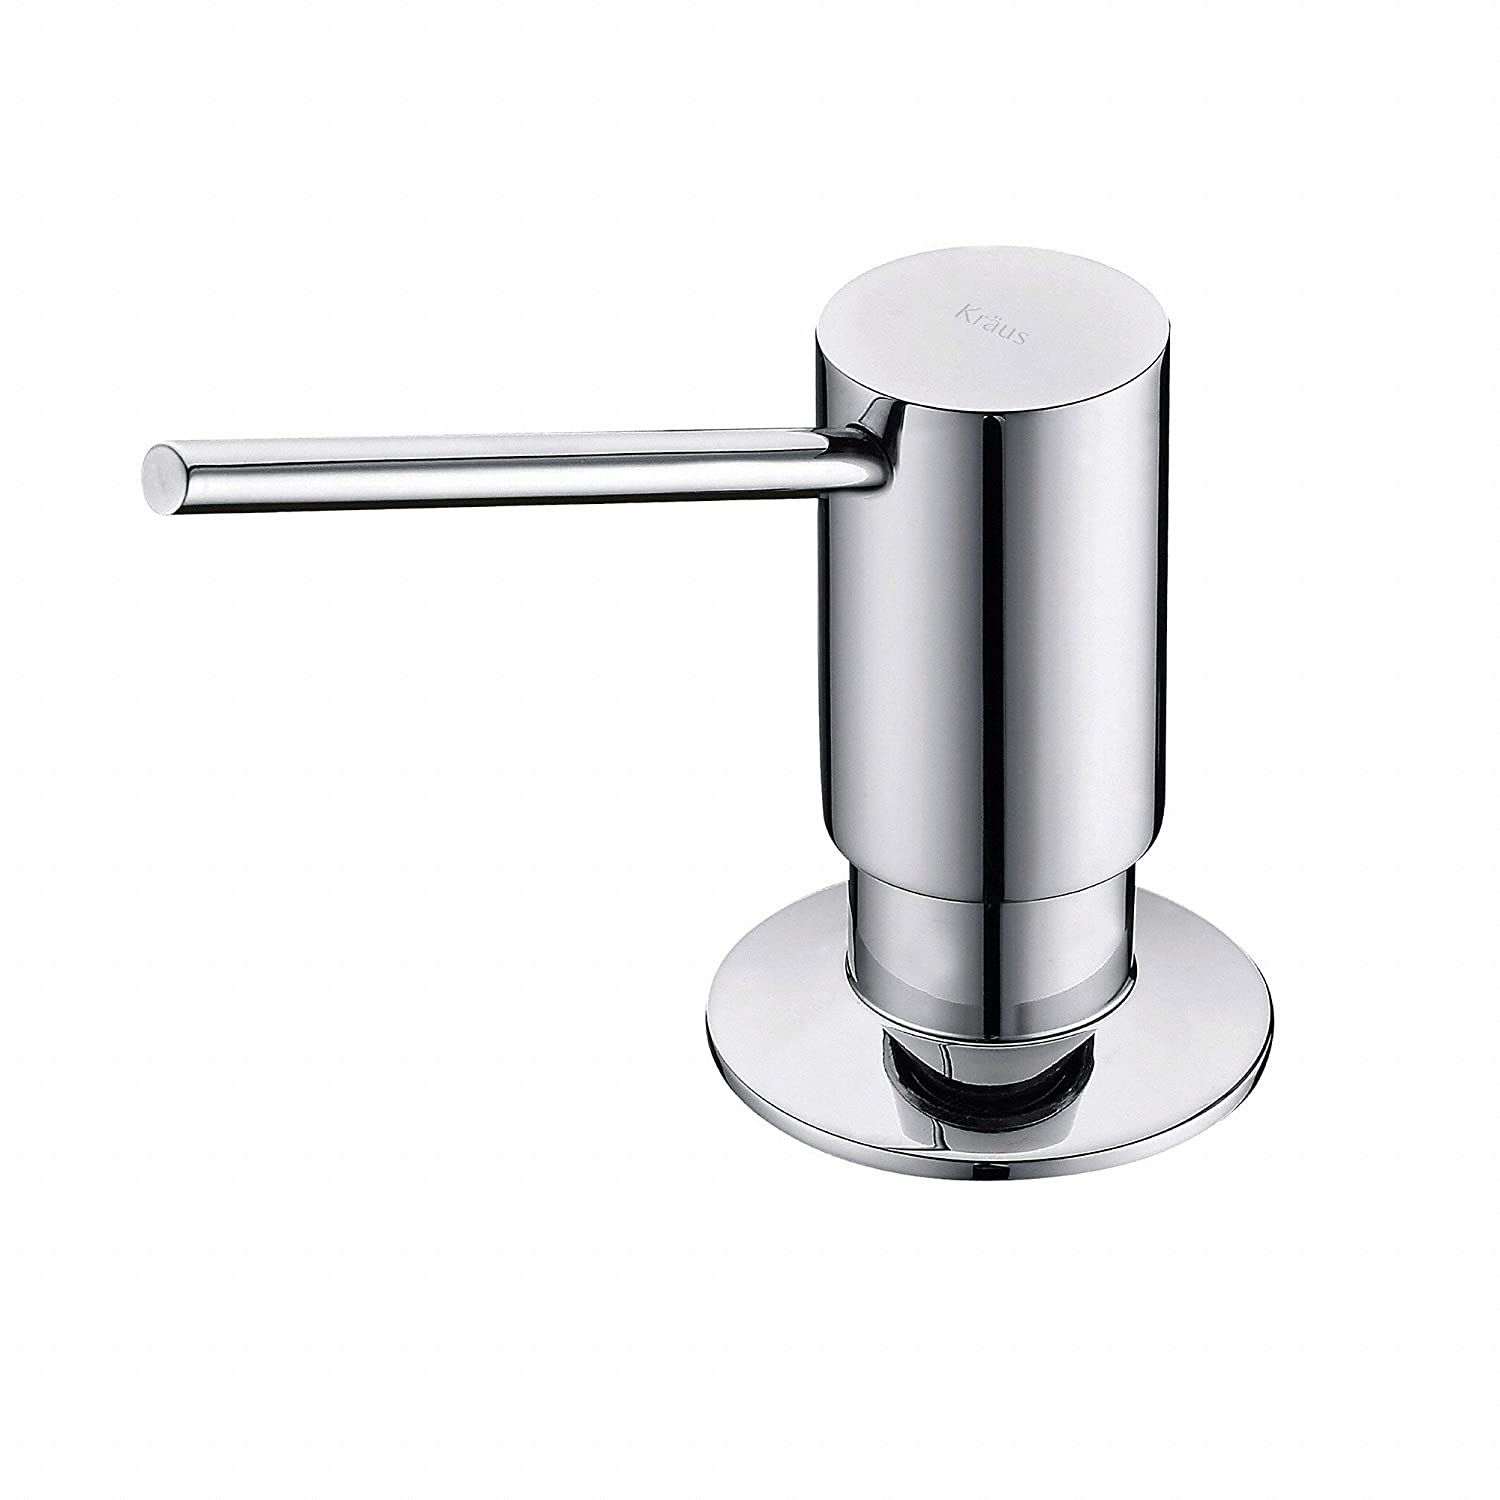 Kitchen Faucet Soap Dispenser Built In Soap Dispensers Amazoncom Kitchen Bath Fixtures